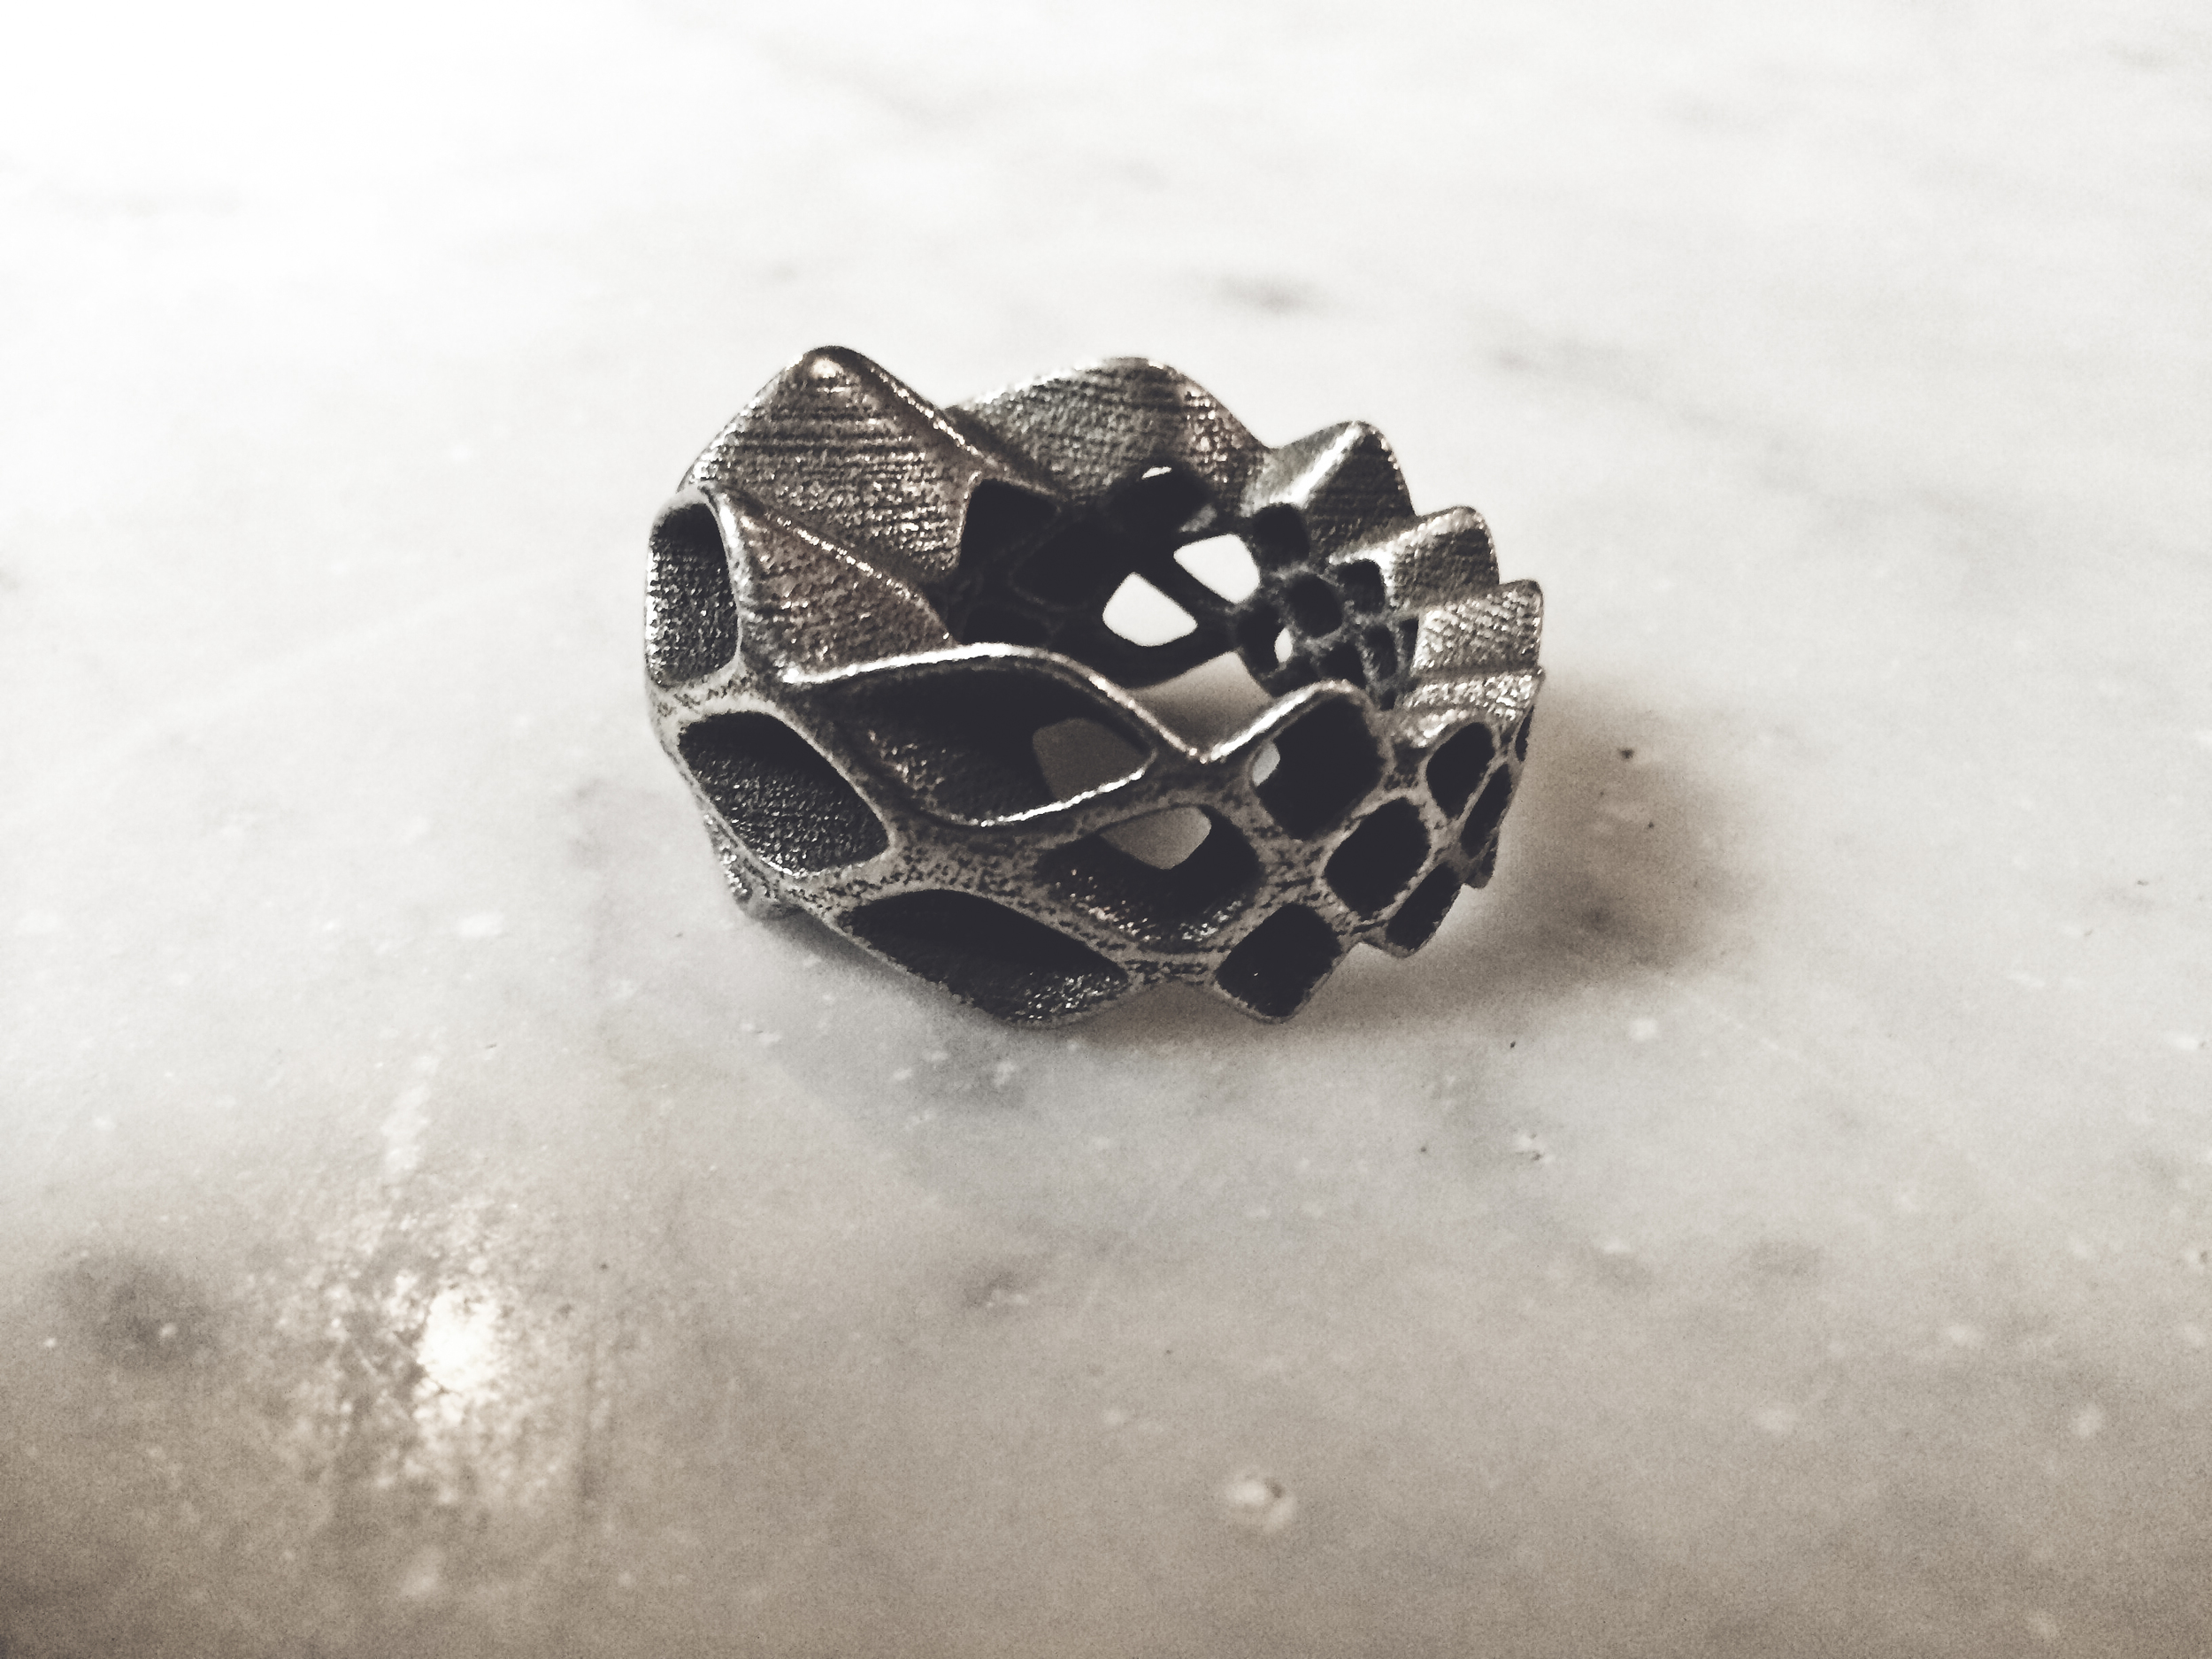 mesh ring, 3D printed steel ring, photography ldvc ludovico lombardi  the mesh is formed and informed by the finger to create constant and gradient variationsof the meshlooping around the fingers. the mesh quads are bot the structure and the ornament of thering in an integrated design solution.